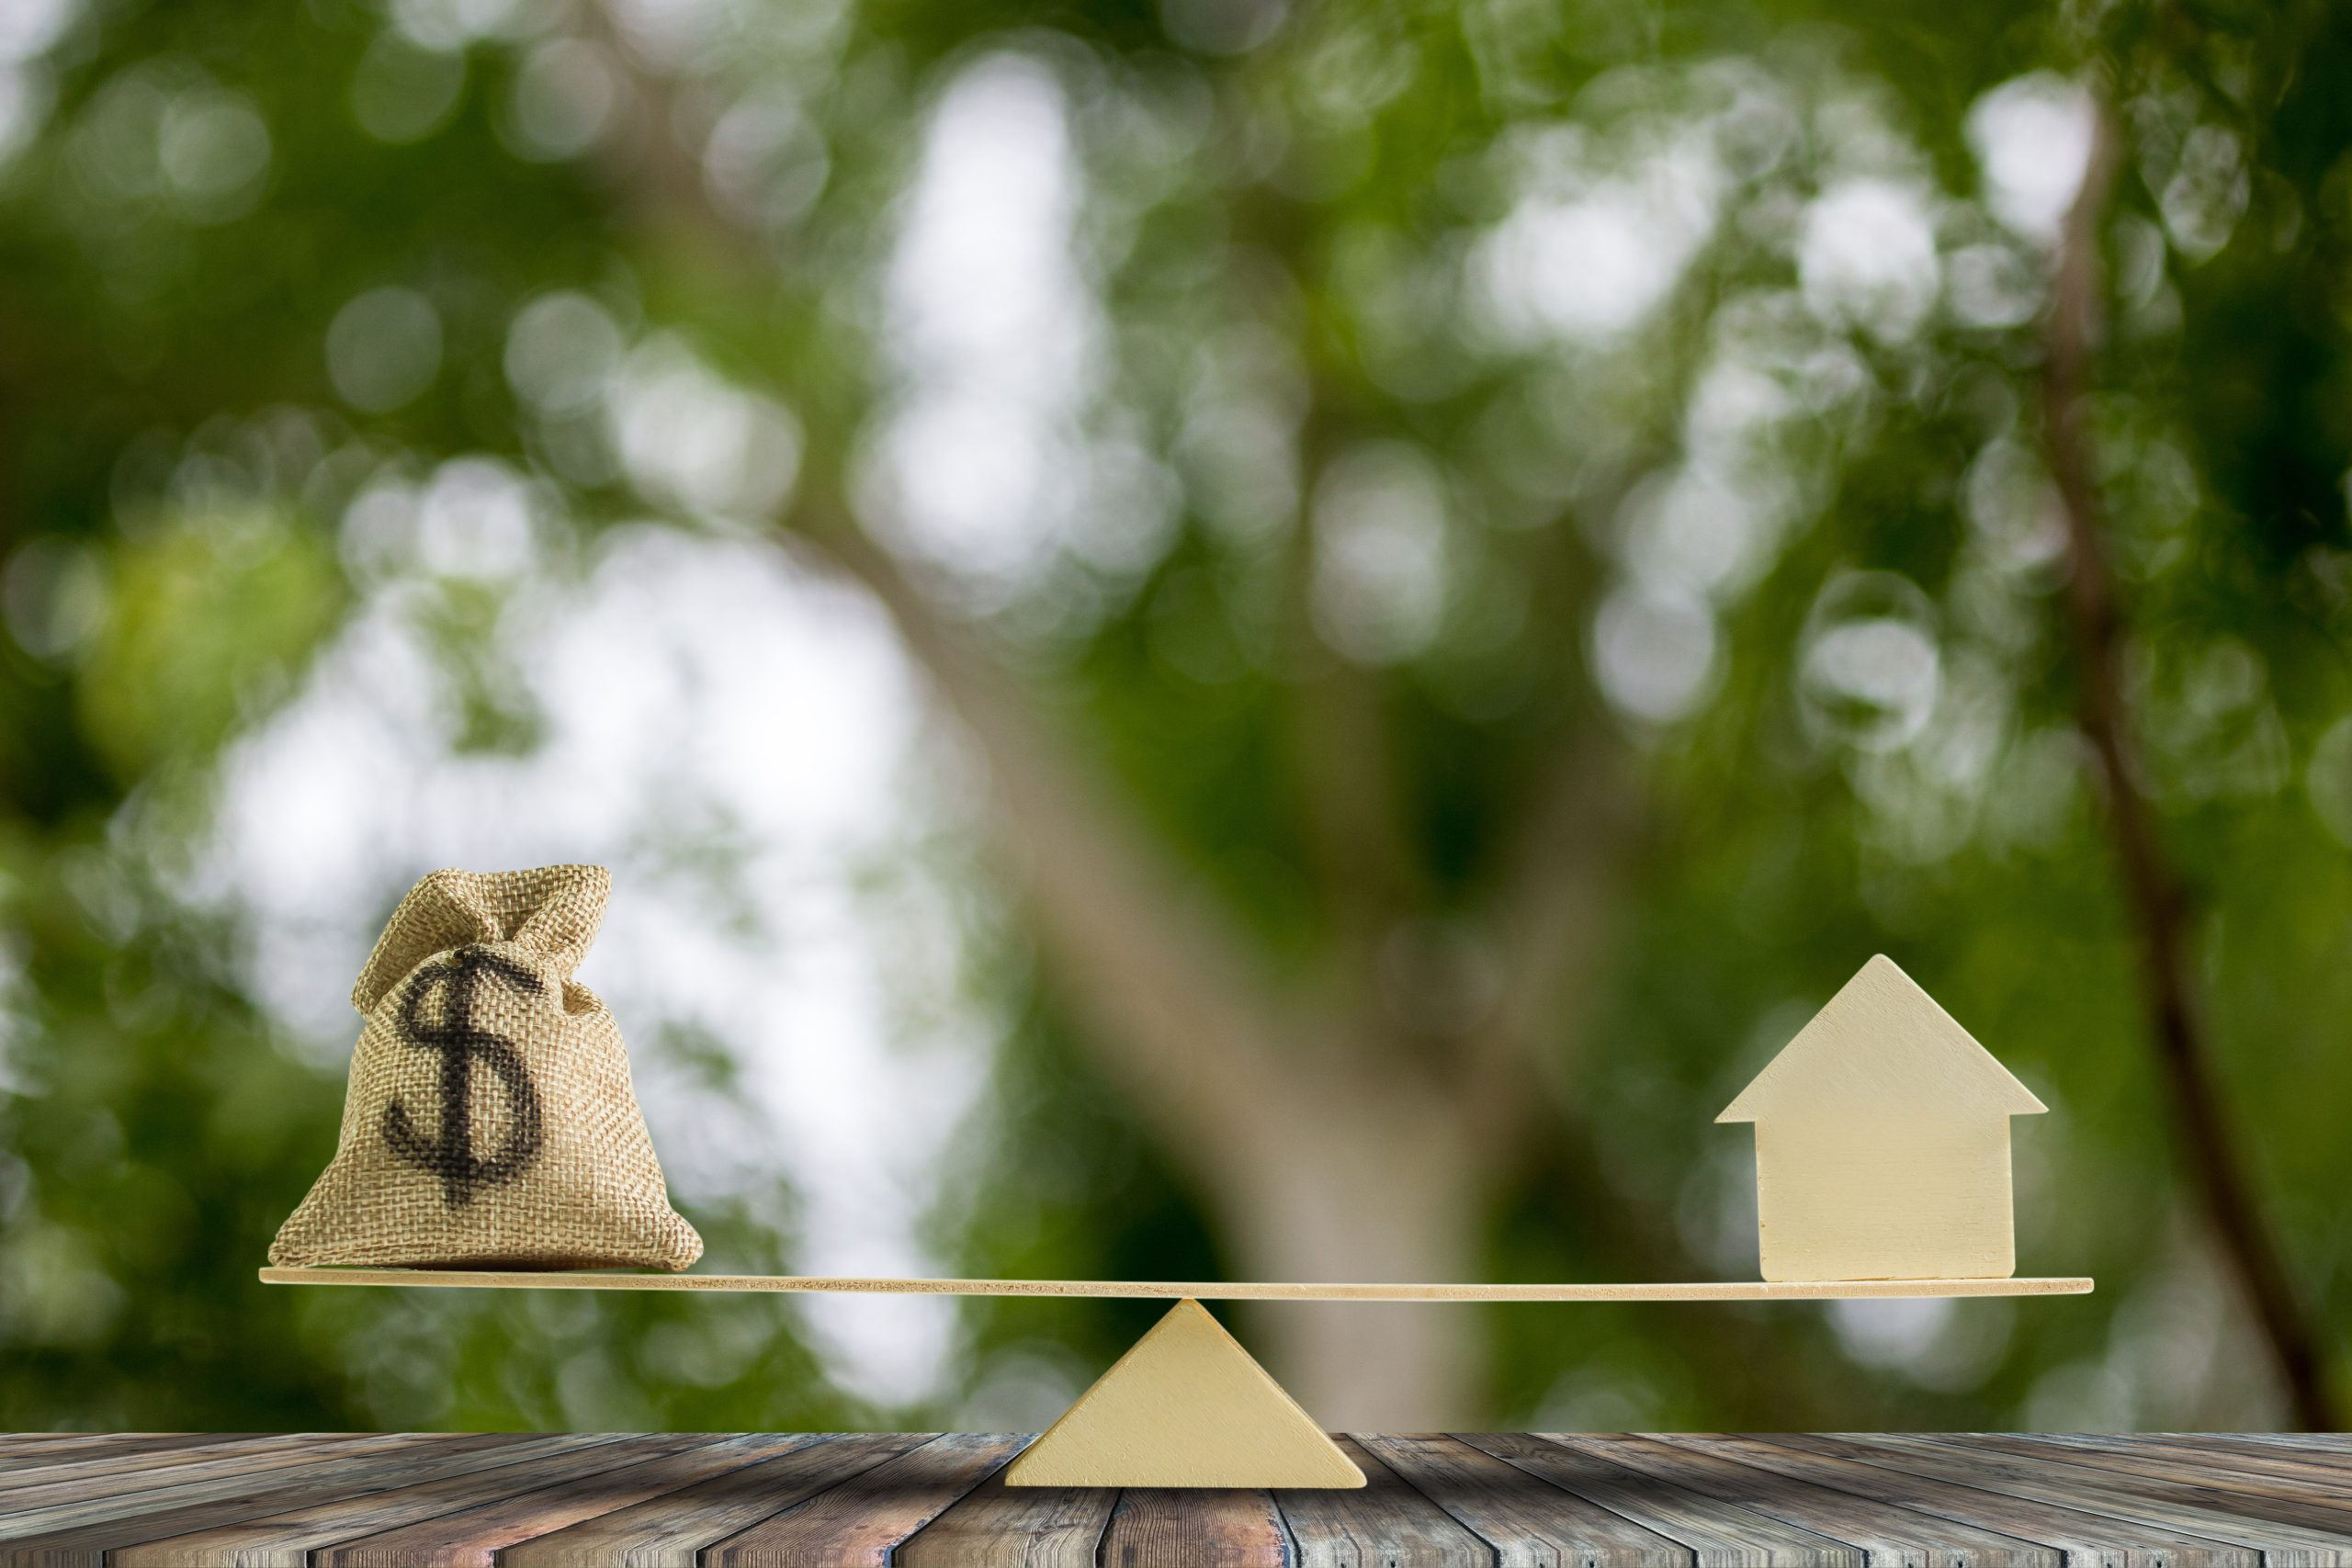 Money and home,loan,mortgage. Change home into cash concept : US Dollar in sack bag, Wooden house model put on scales on wood table with green tree bokeh as background. Balance home and debt.